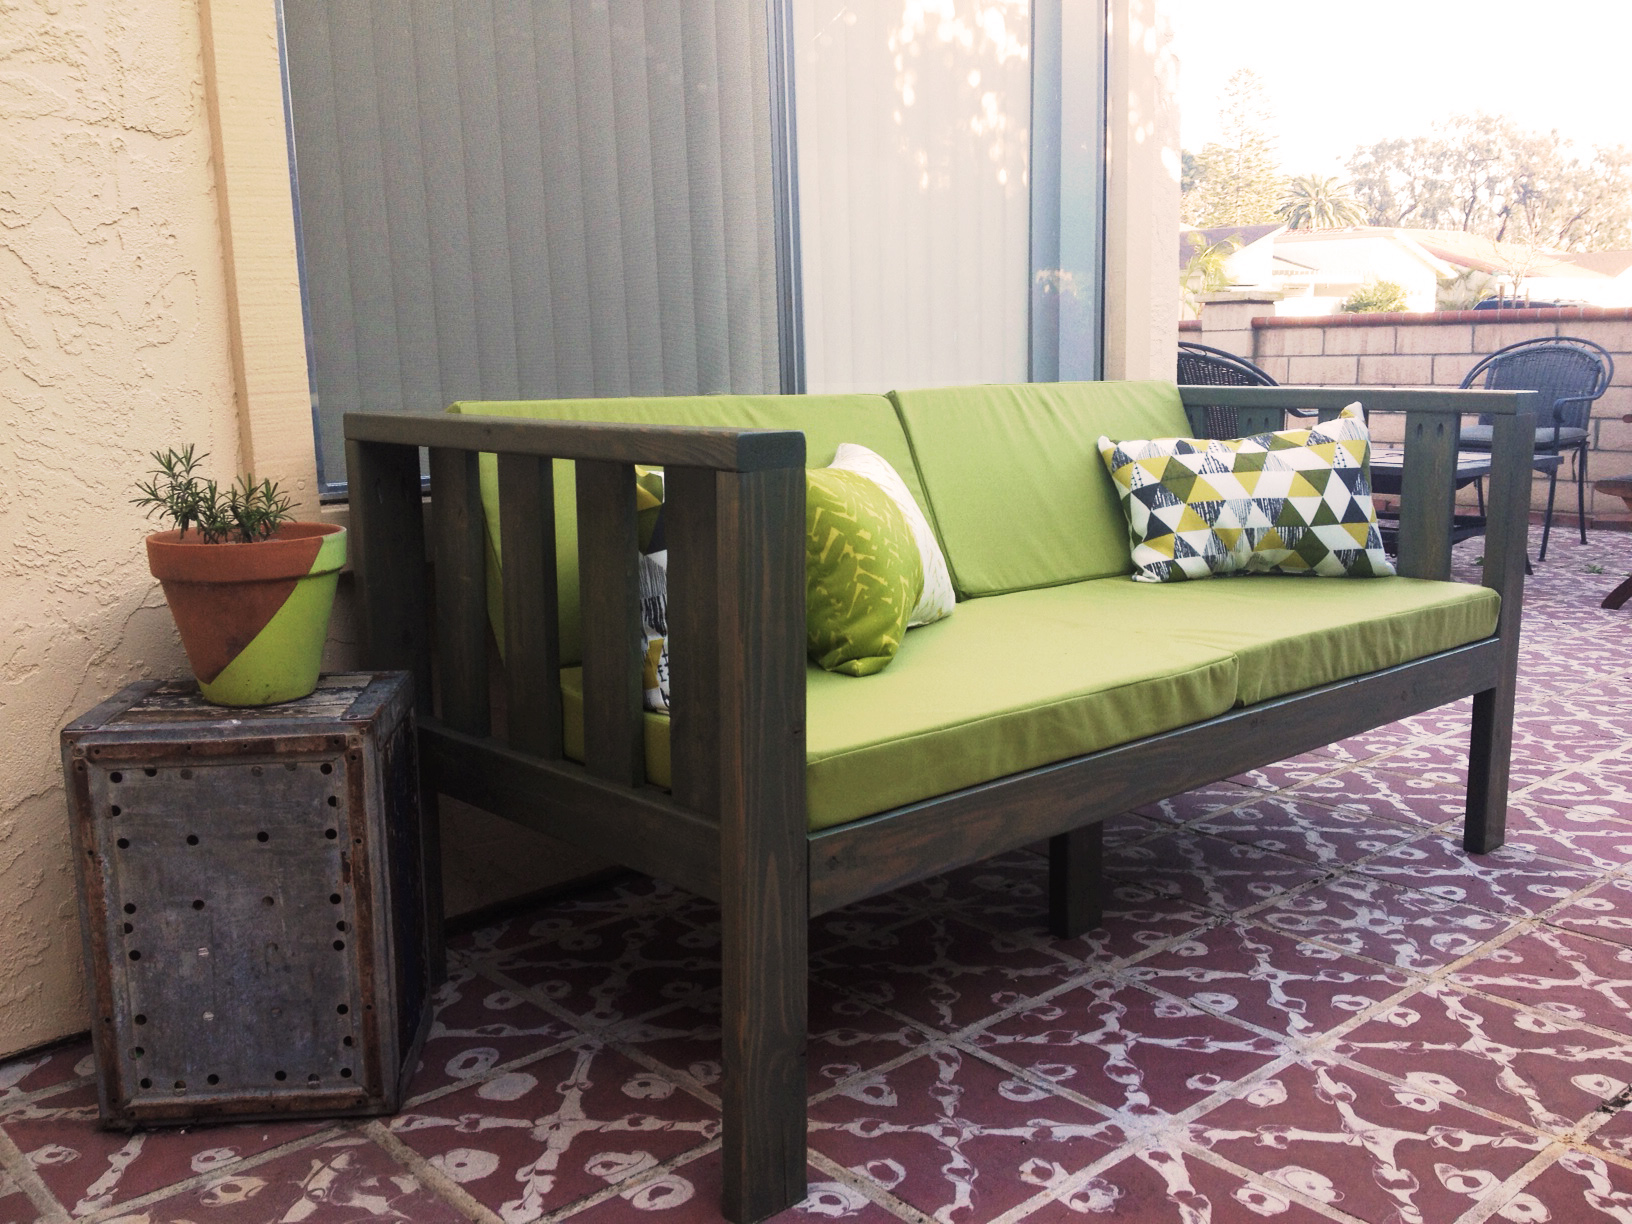 Diy outdoor sofa - Photo 2 Copy